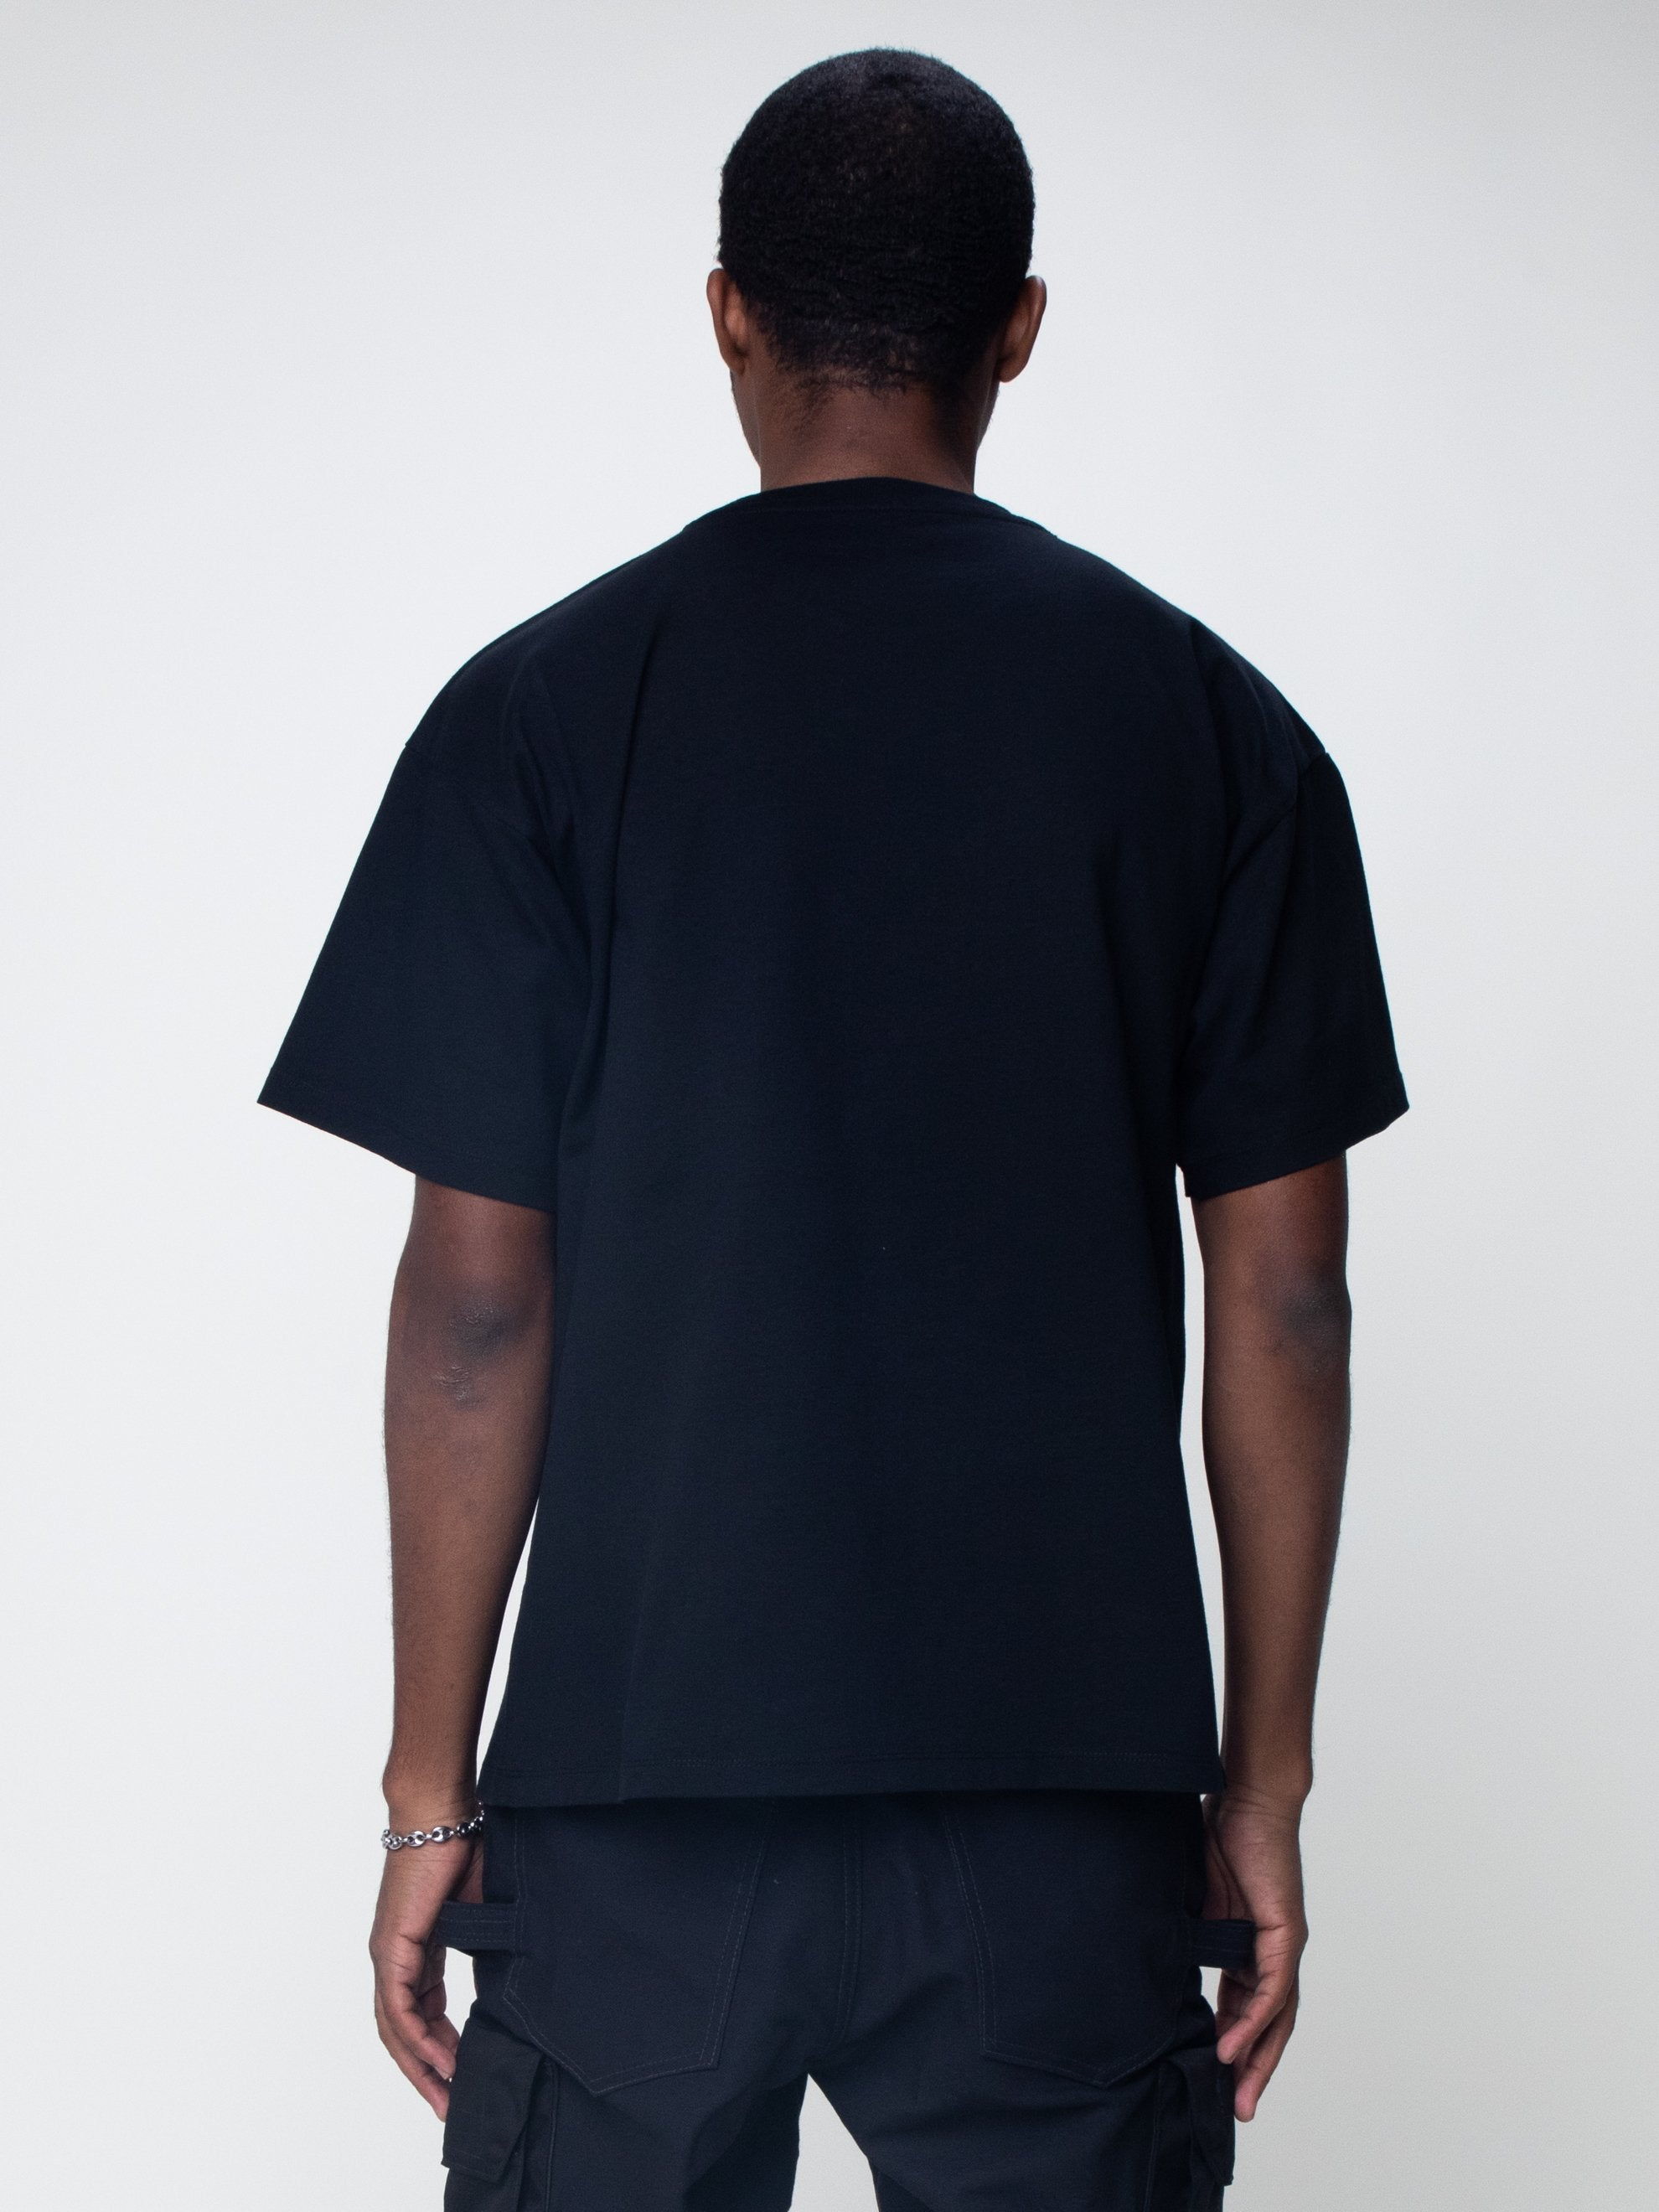 Black Rassvet T-Shirt 6